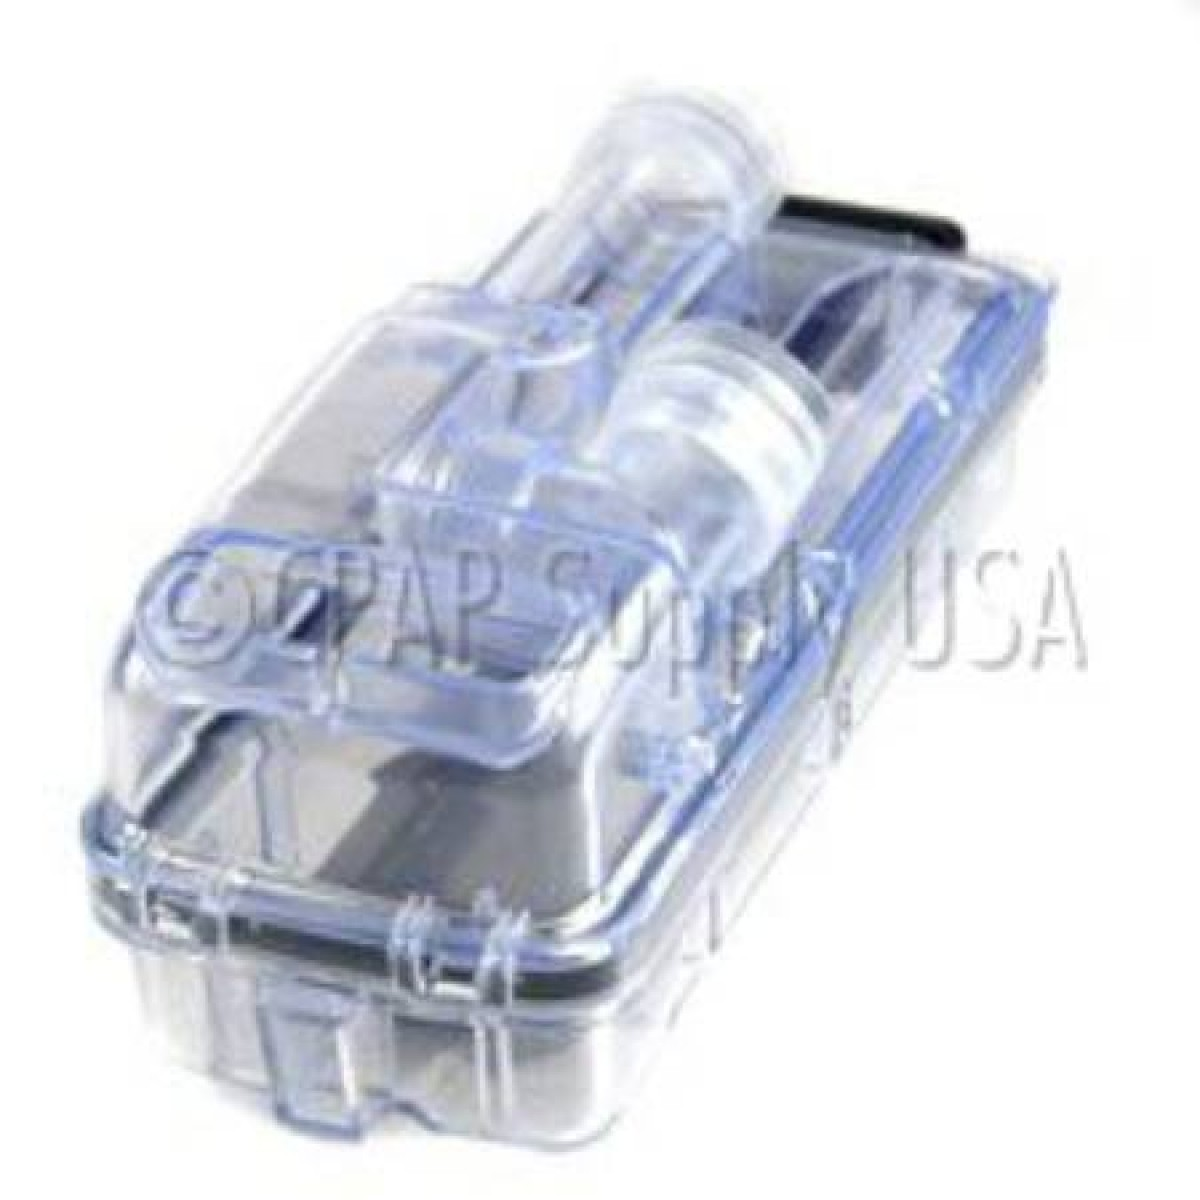 Home Humidifier Chamber Kit with J tube Openings 1003758 #485A83